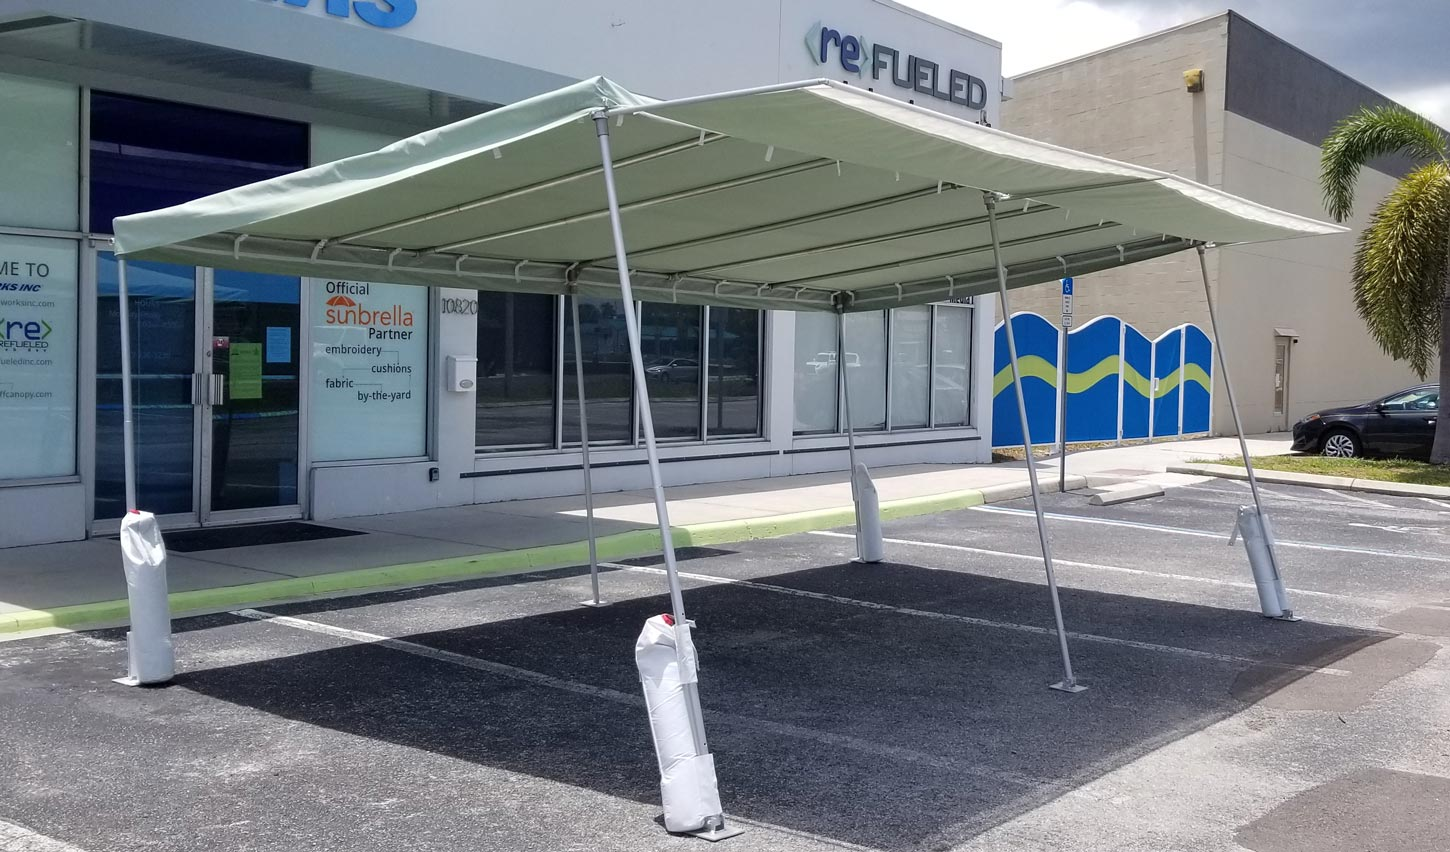 medTent with awning